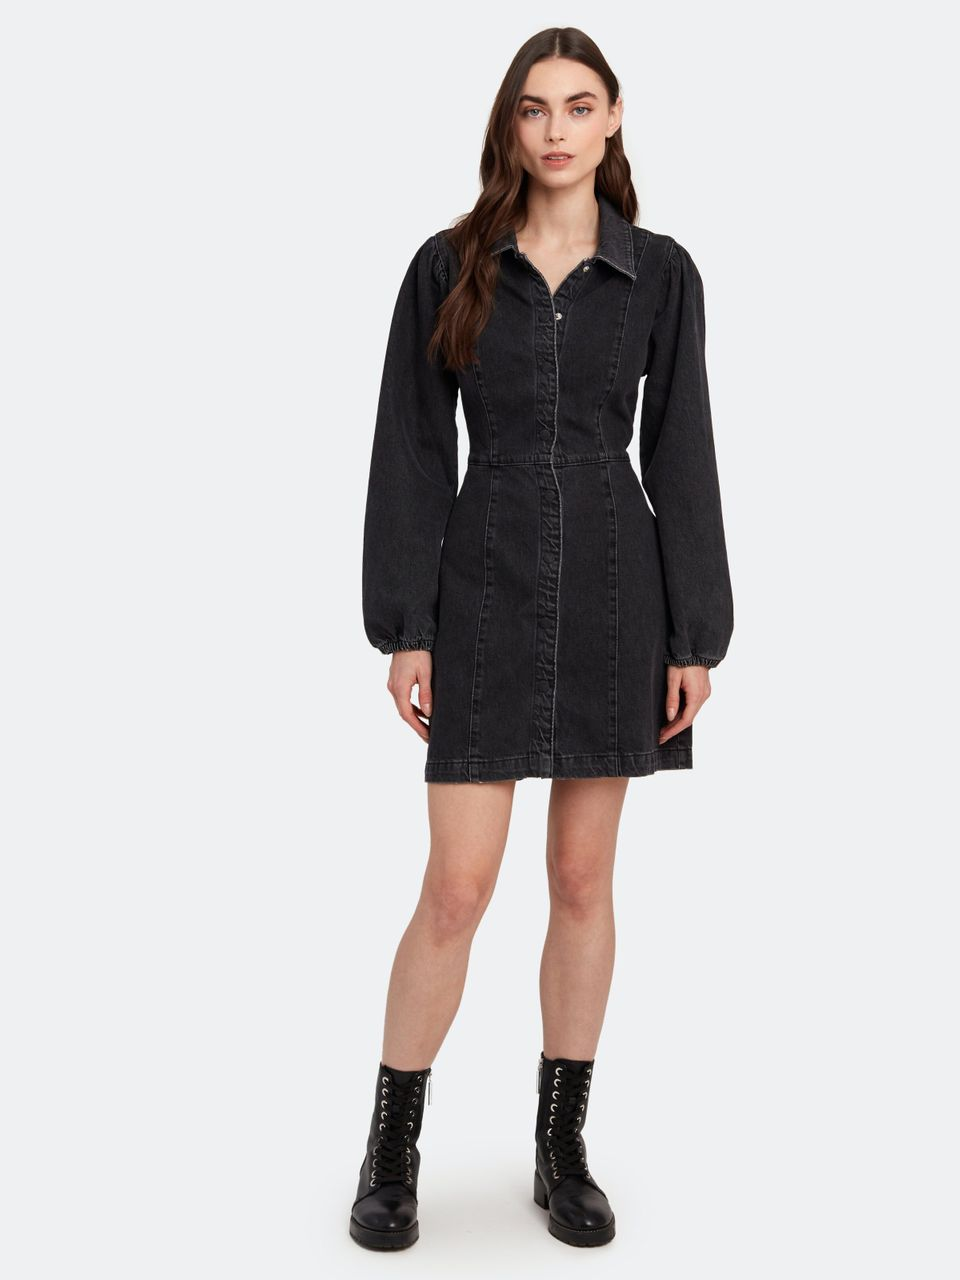 If You're A Nordstrom Fan, You Should Check Out This Verishop Sale 1